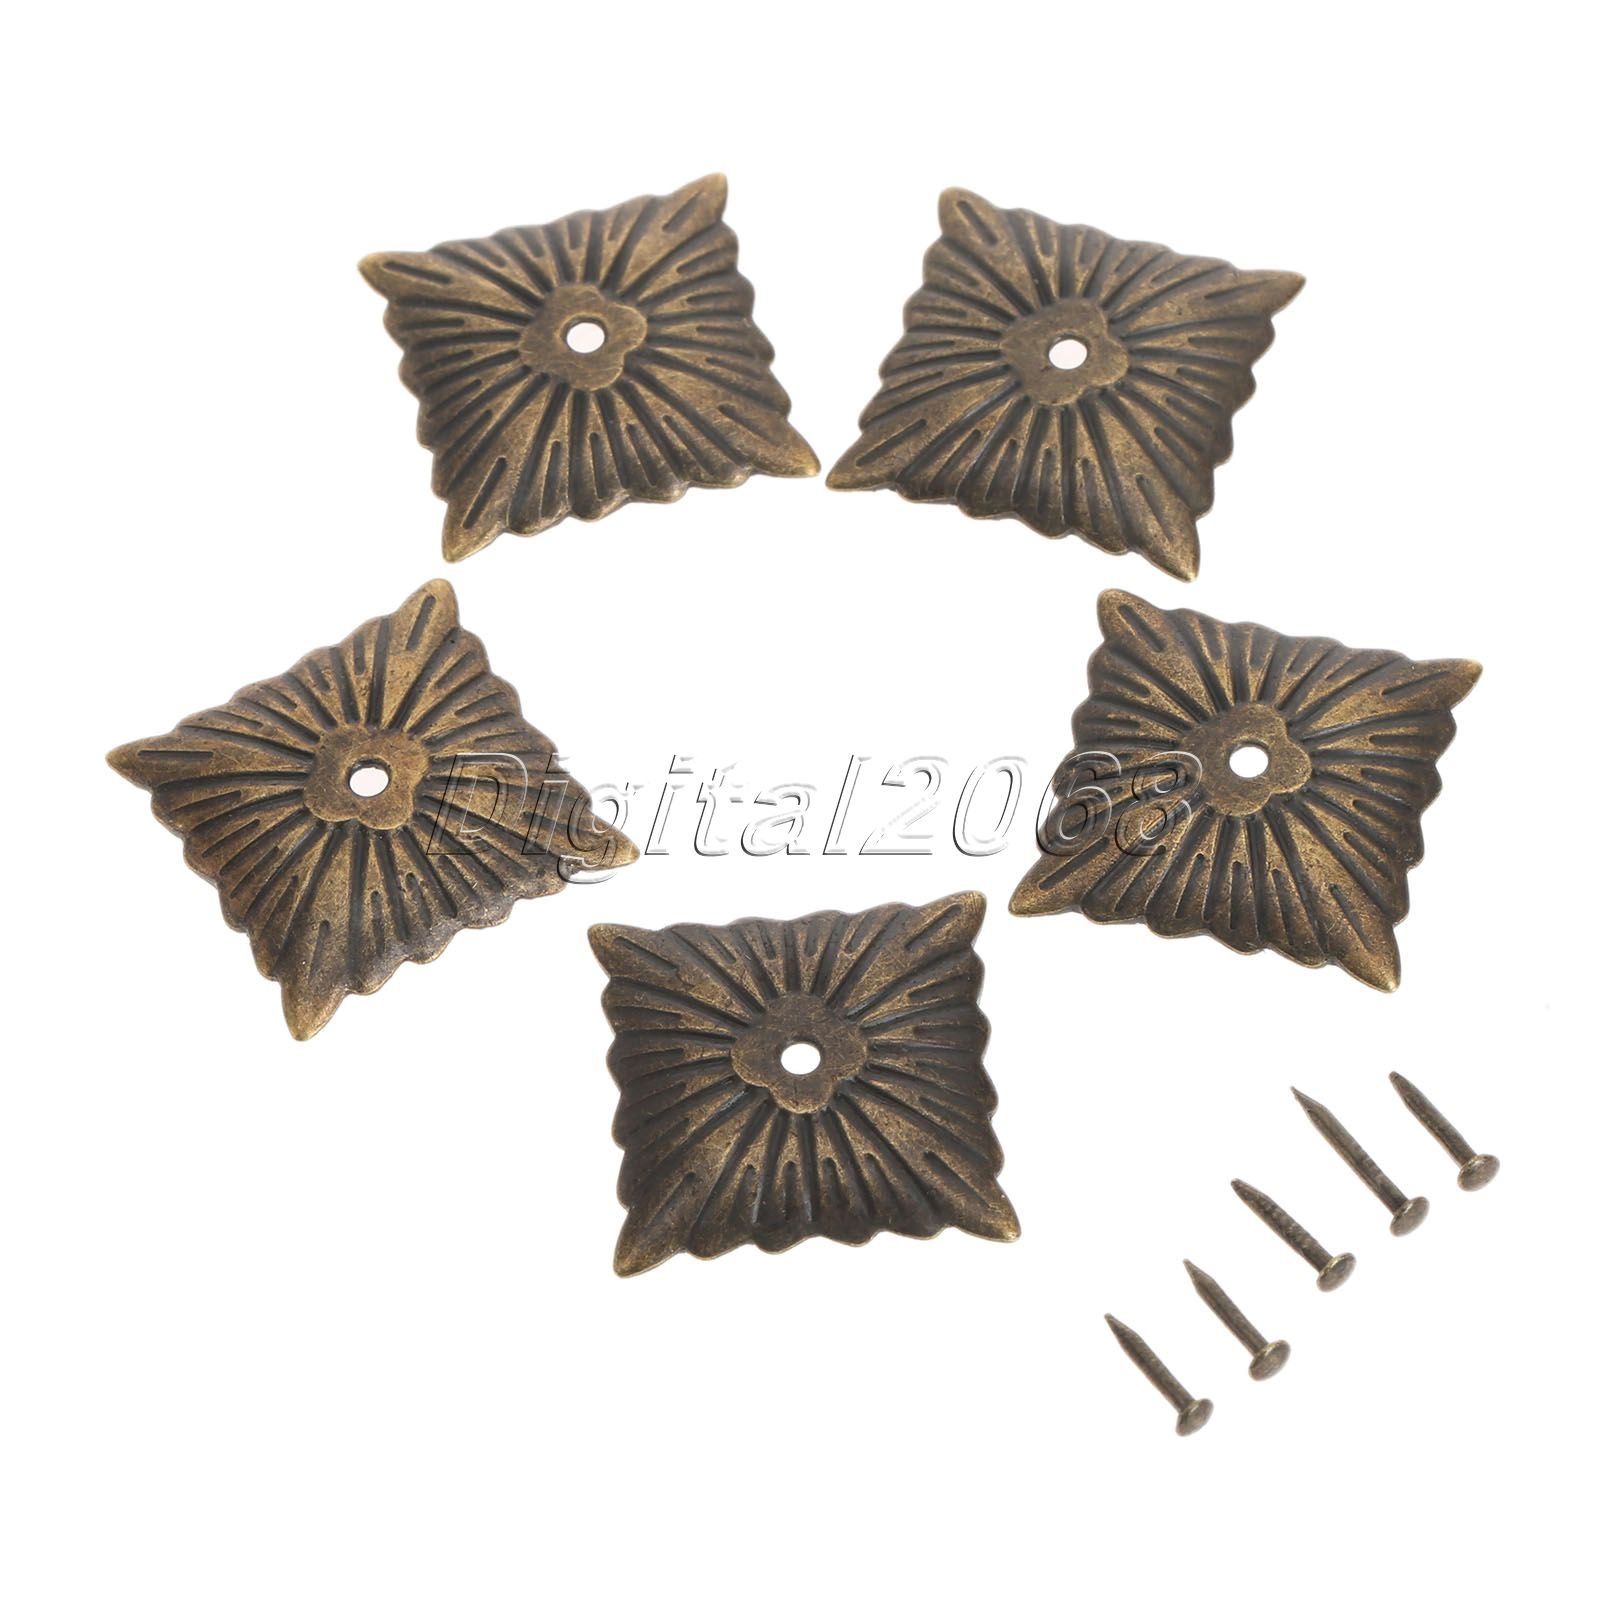 decorative nails for furniture. 100Pcs Iron Bronze Antique Square Decorative Upholstery Nails Tack Studs For Vintage Furniture Door And Home Decoration 21x21mm I